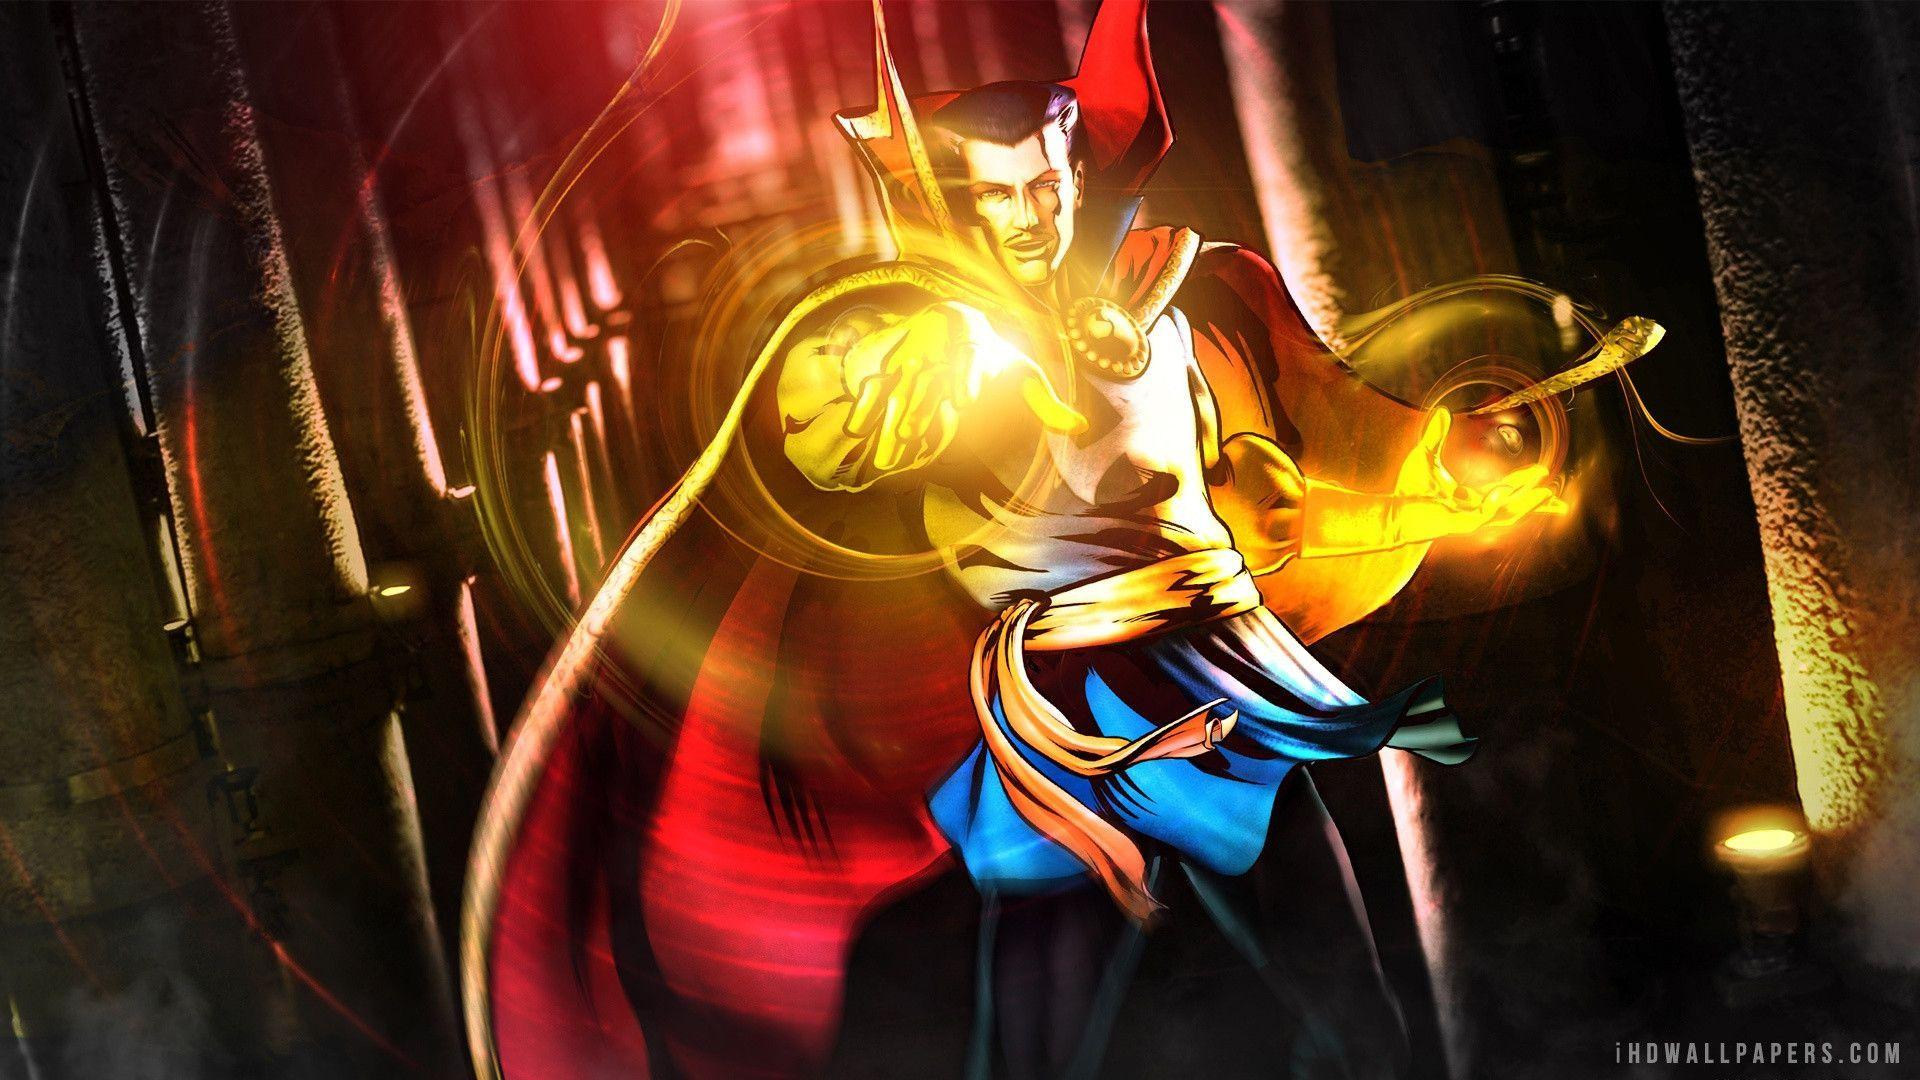 Anime Cry Wallpaper Doctor Strange Wallpapers Wallpaper Cave